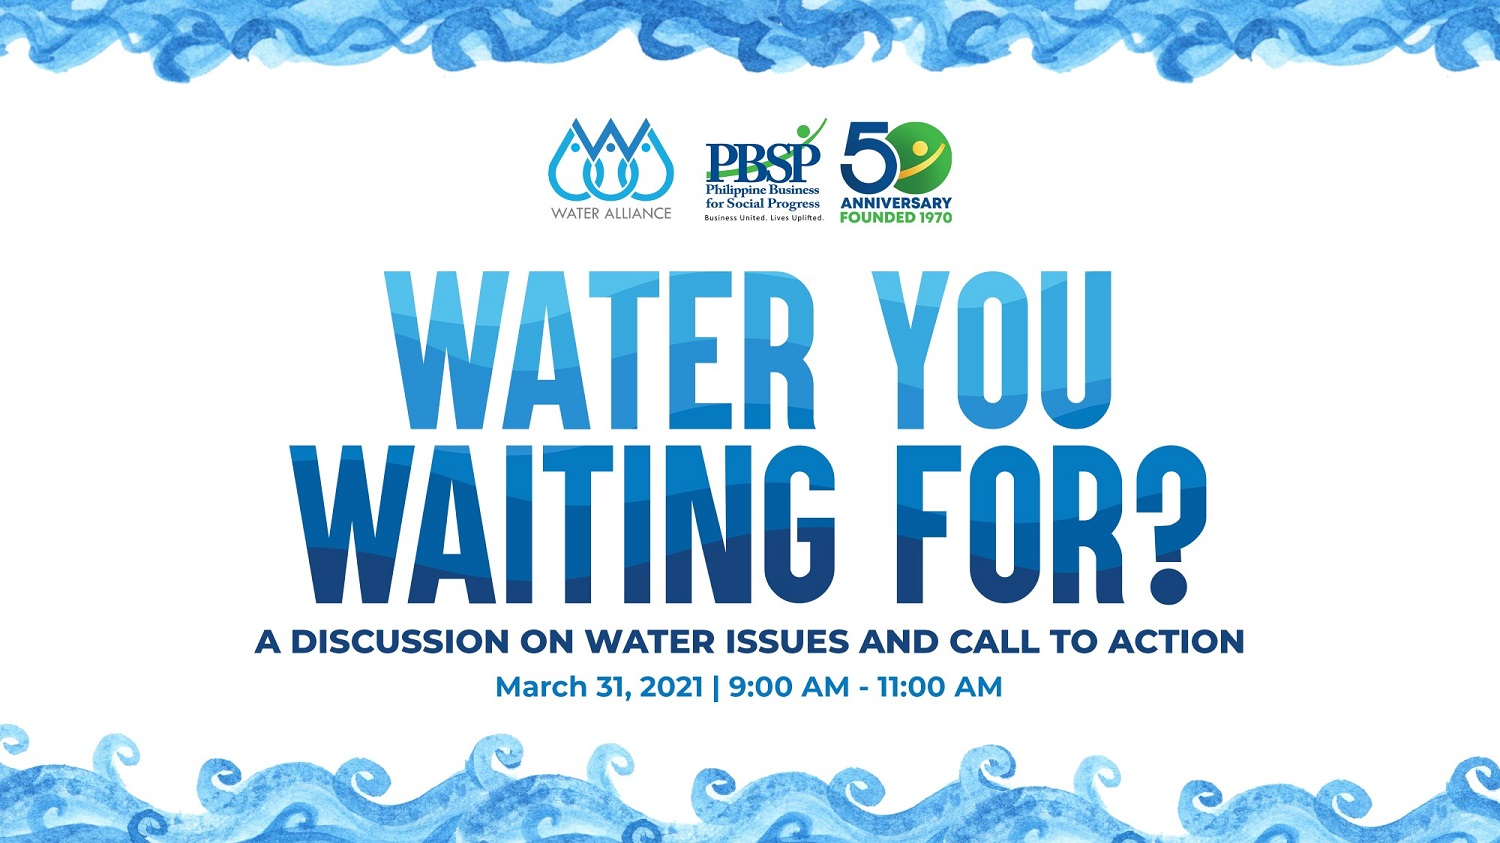 Water You Waiting For? A Discussion on Water Issues and Call to Action